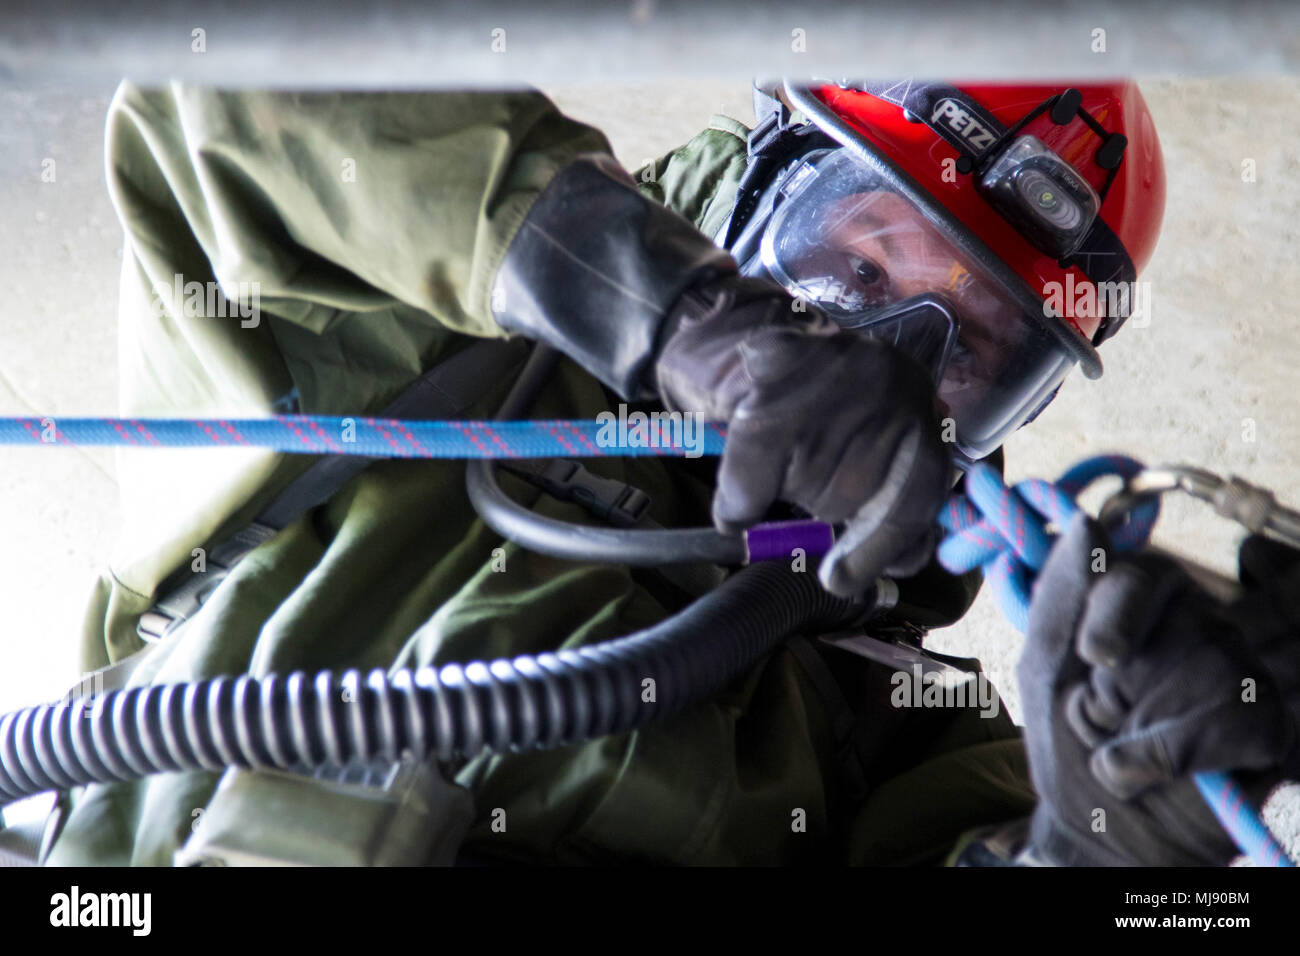 Sgt James Matter Prepares The Rappelling Apparatus To Reach A